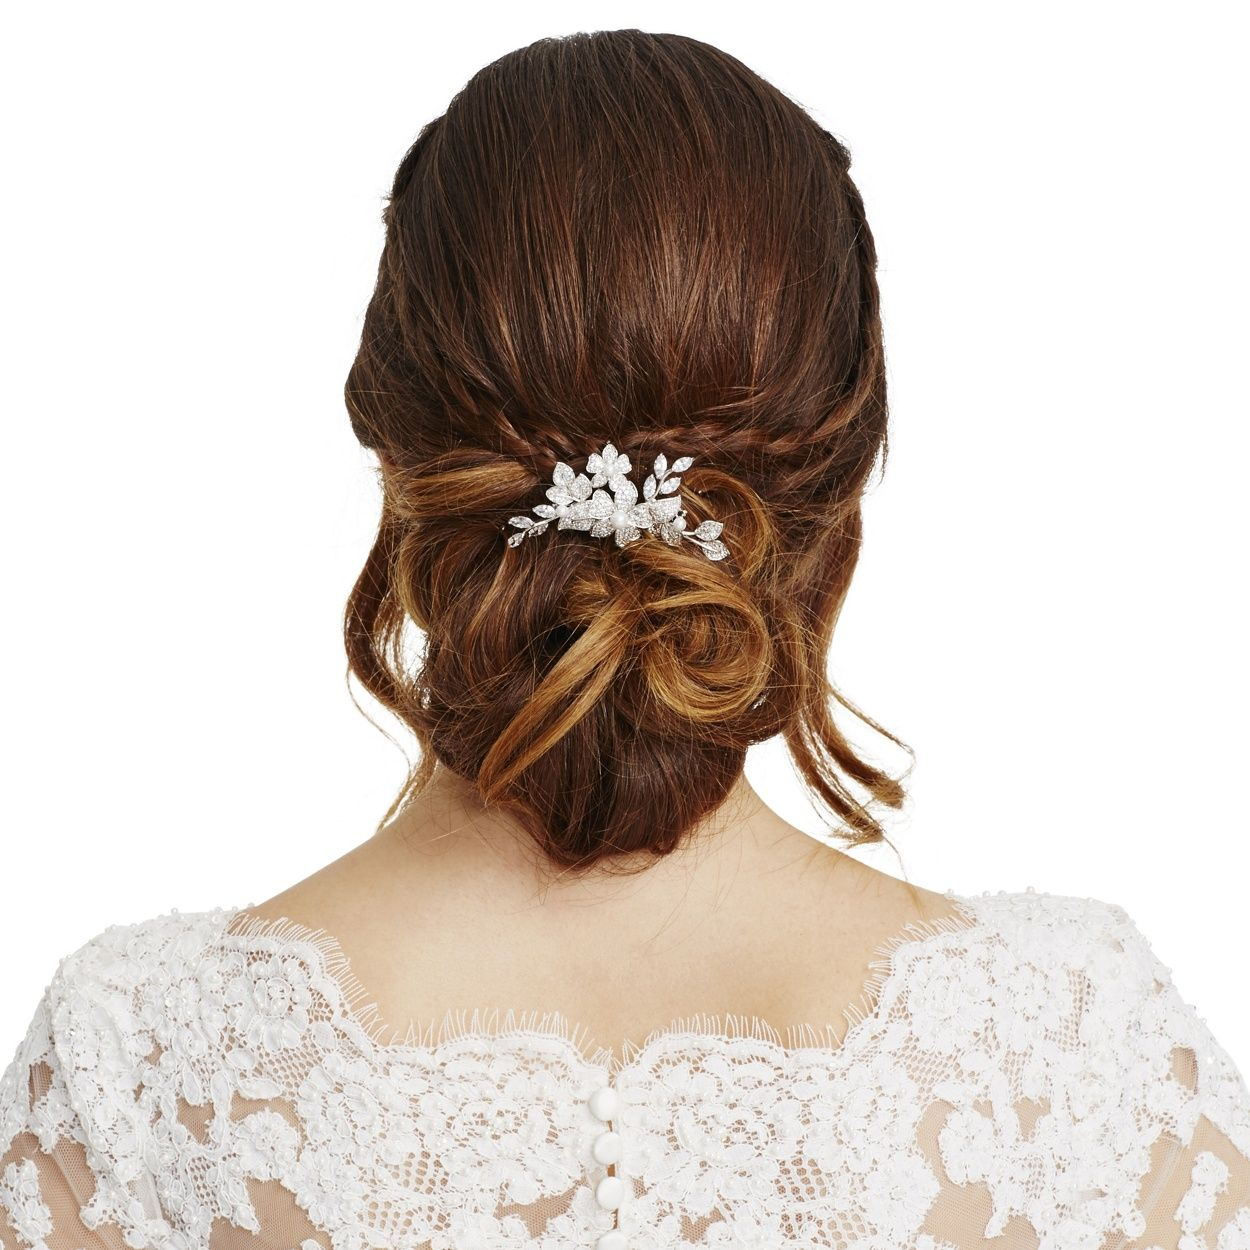 pin by amy colori on wedding | hair accessories, pearl hair